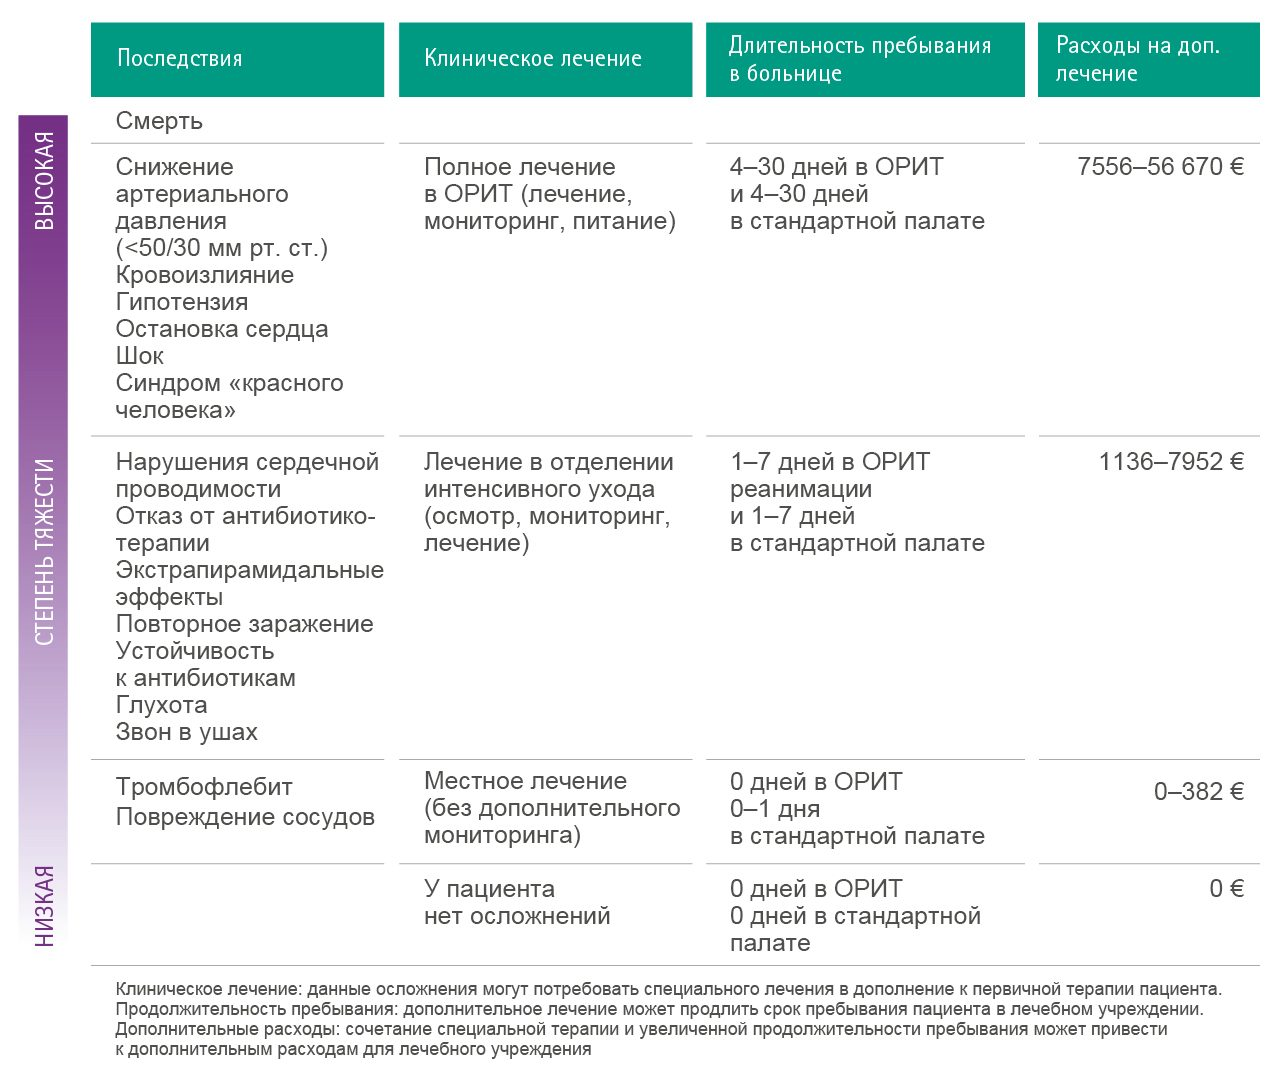 Table with estimations of possible additional costs as a consequence of complications caused by medication error.